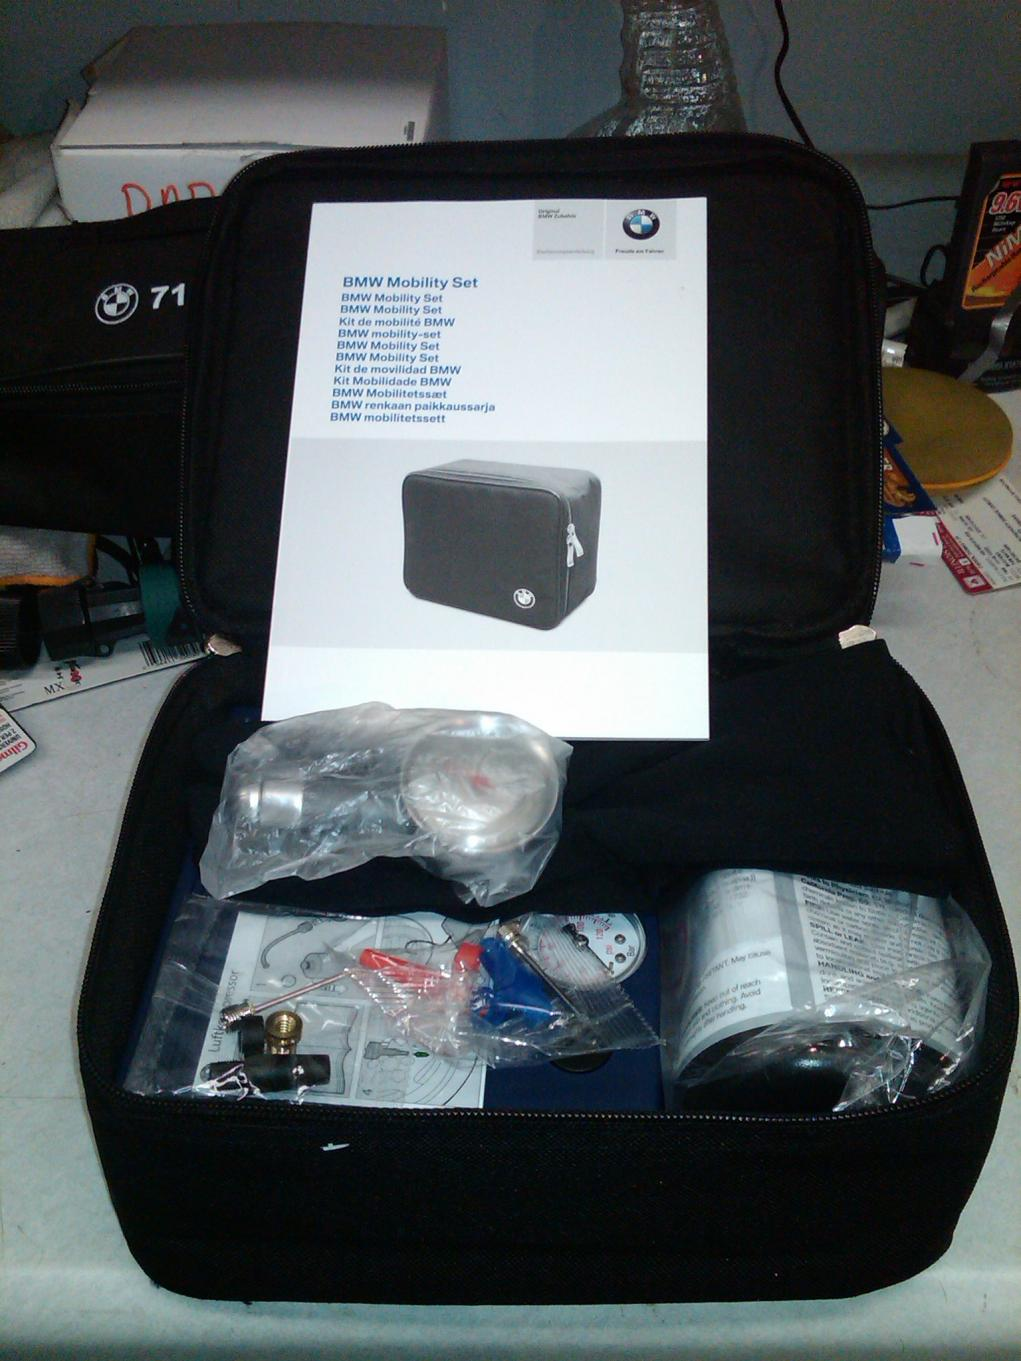 fs oem bmw mobility set inflation kit sold. Black Bedroom Furniture Sets. Home Design Ideas